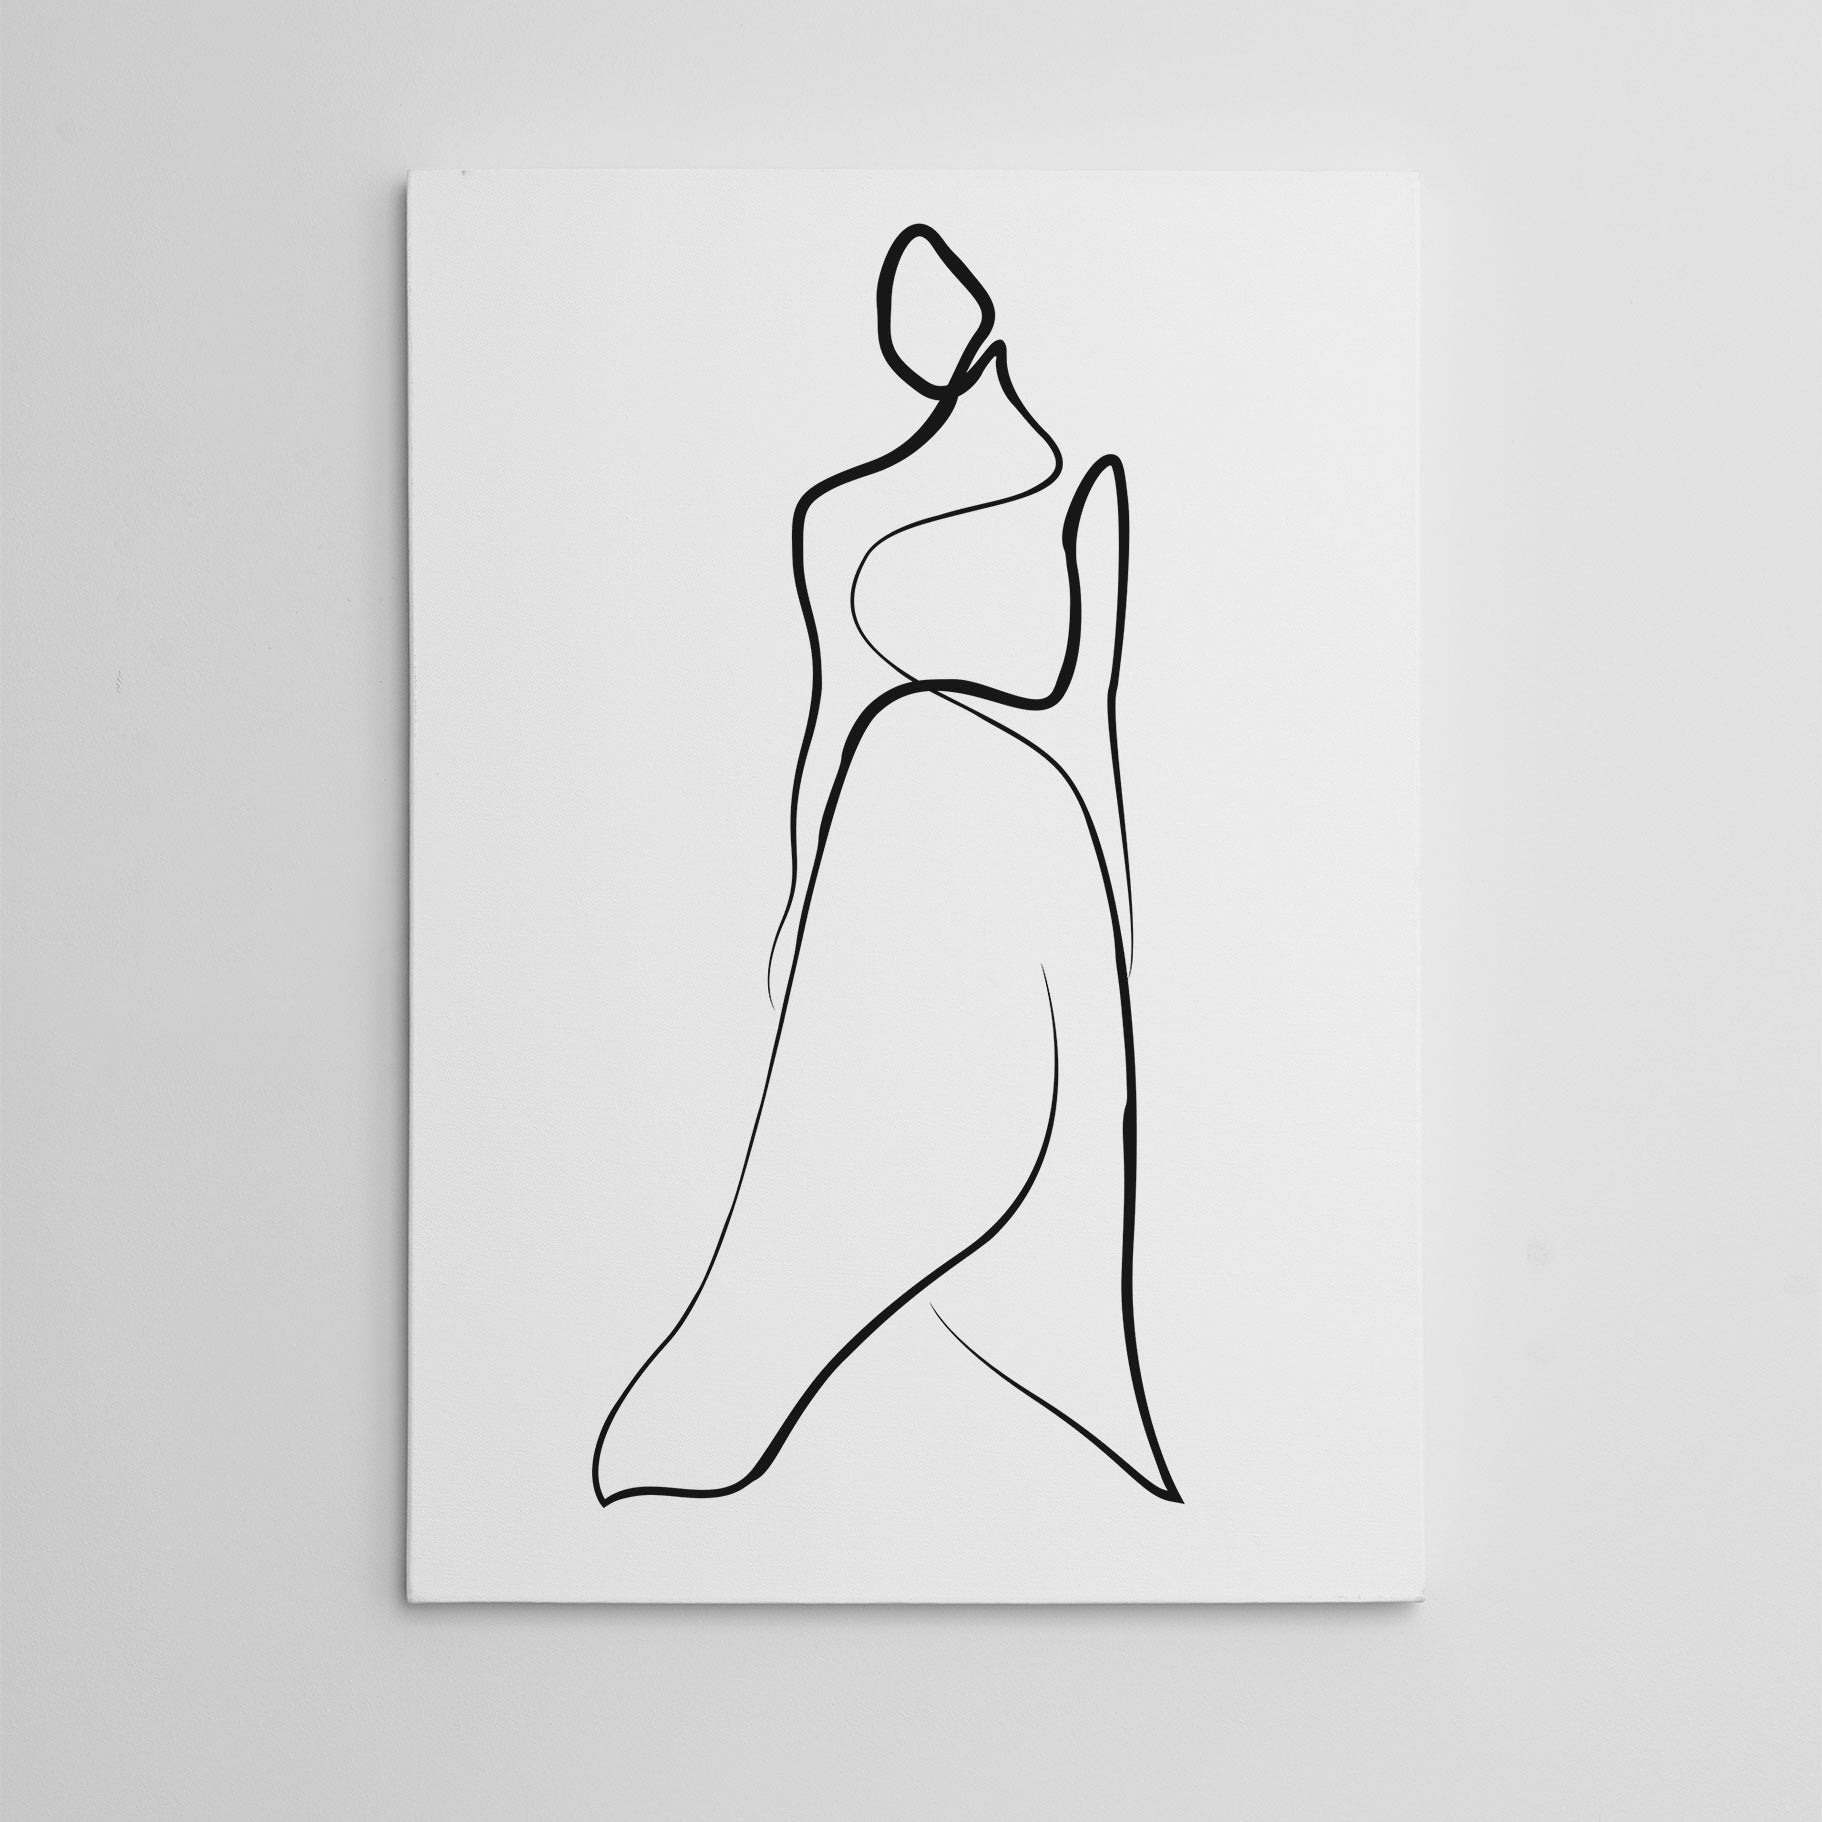 Abstract line art canvas print with a woman with long dress.